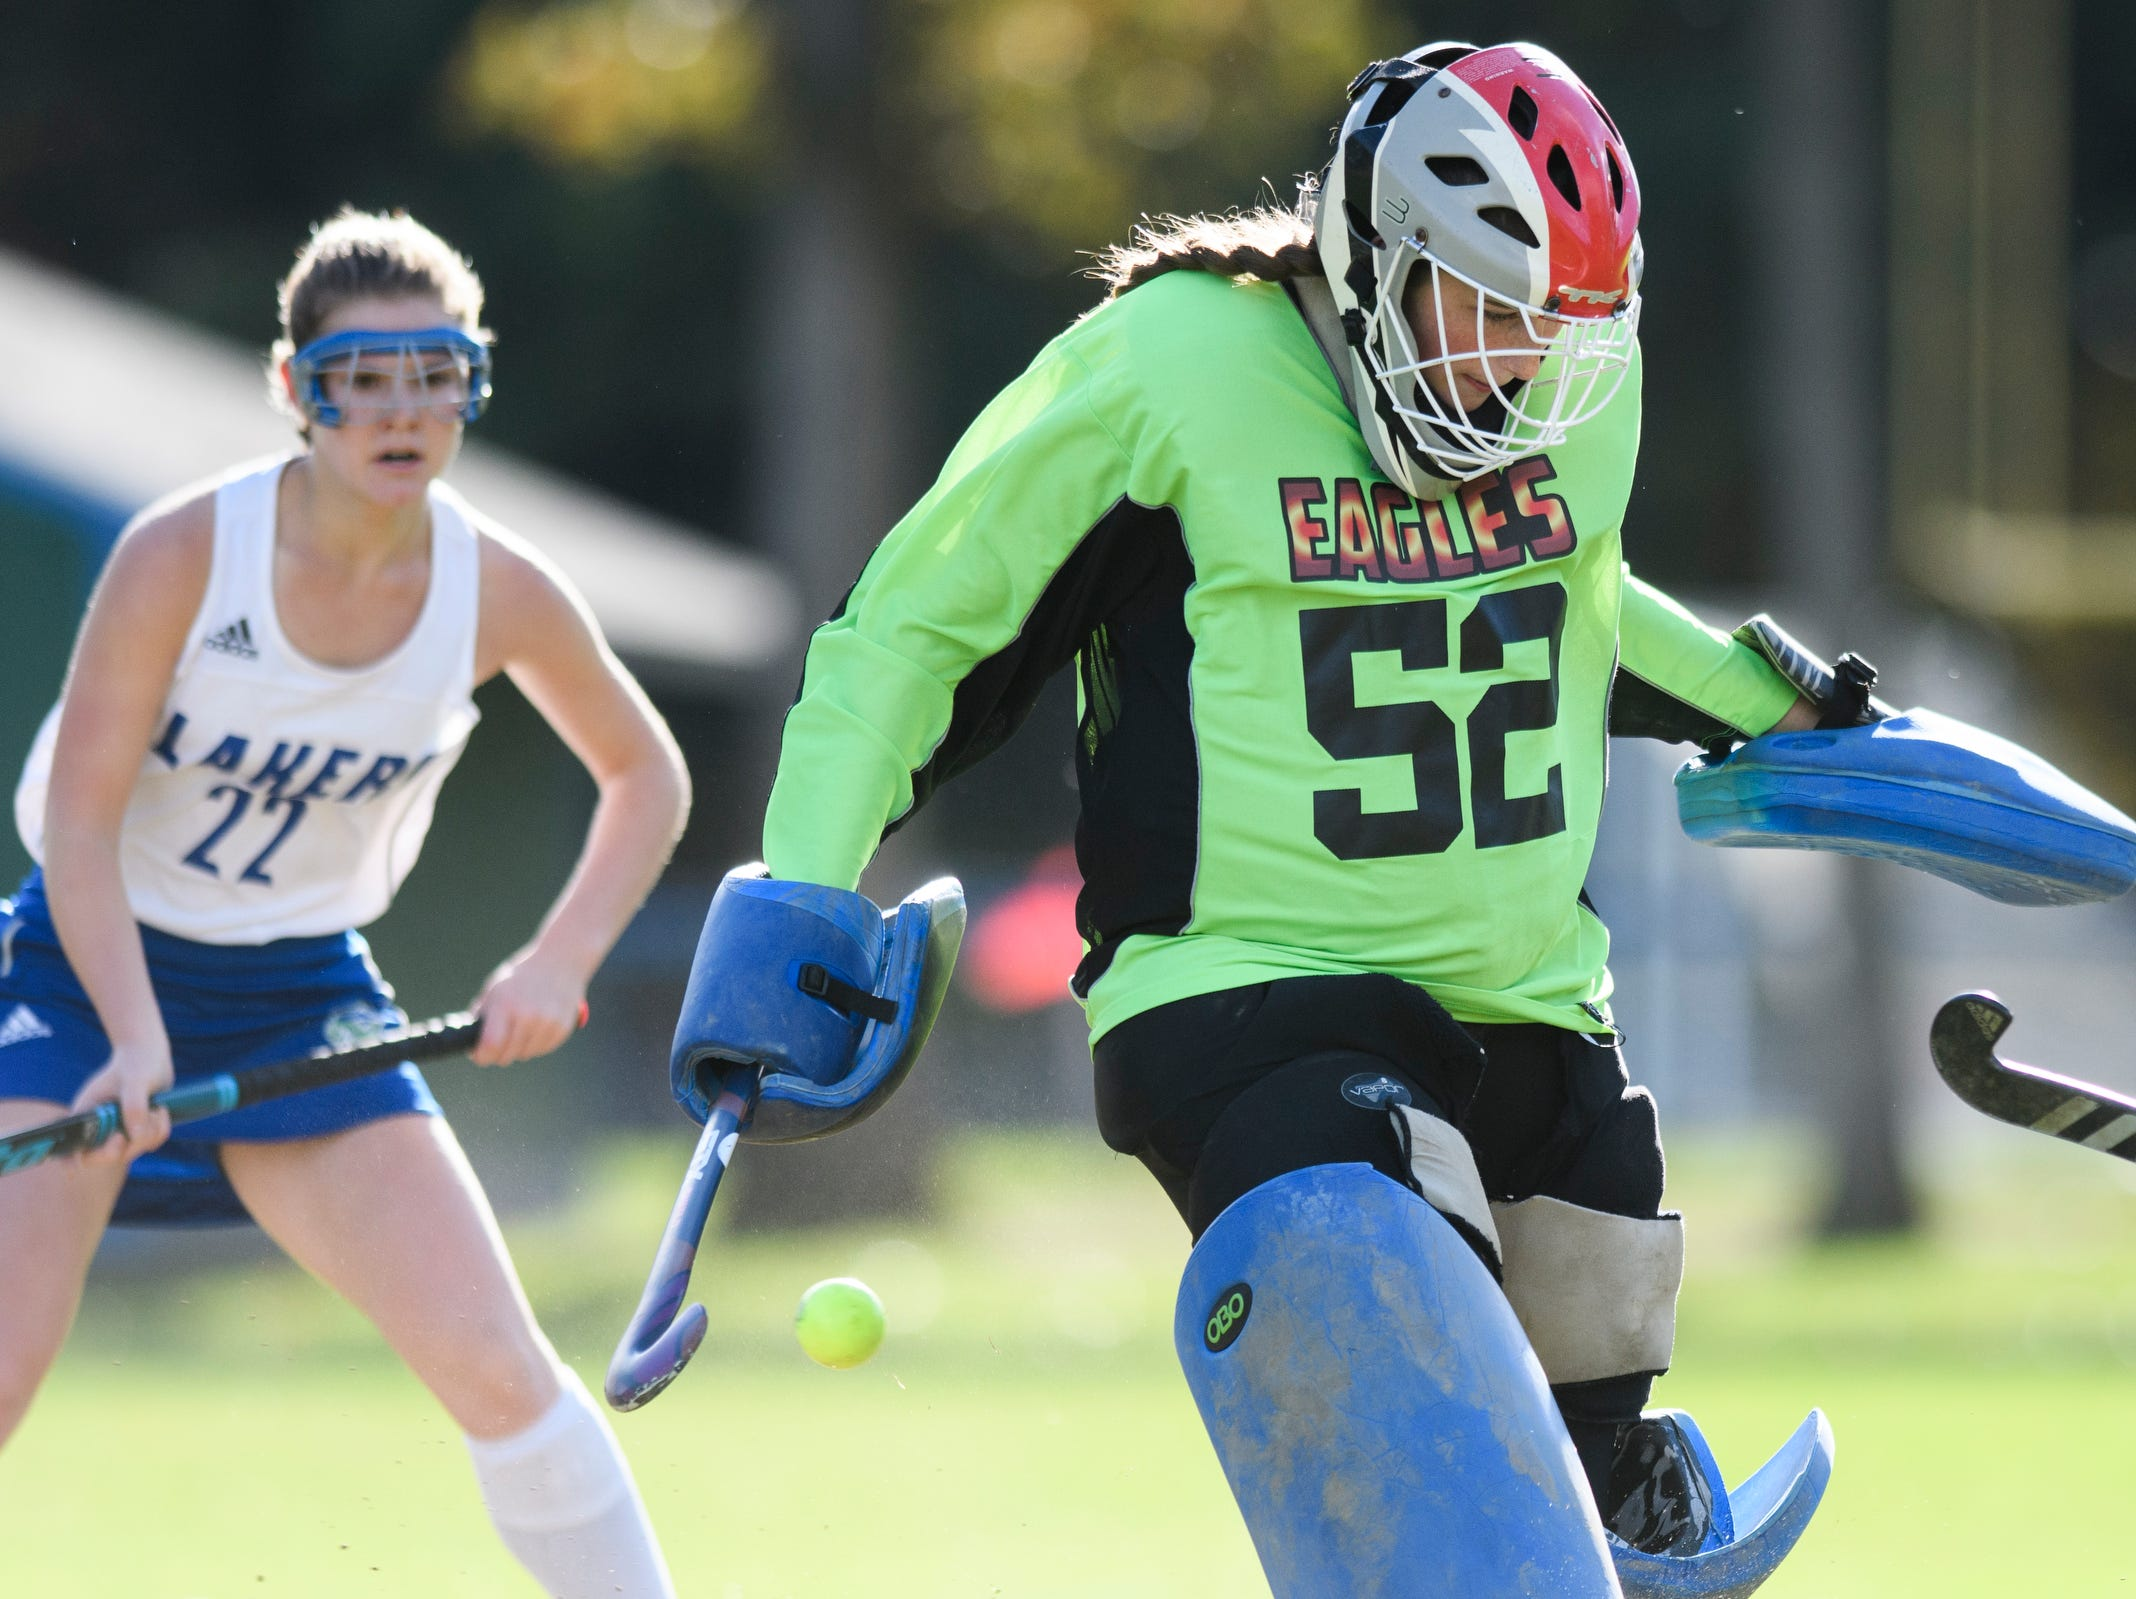 The ball gets past Mt. Abraham goalie Chessley Jackman (52) for a goal during the field hockey game between Mount Abraham and Colchester at Colchester High School on Saturday morning October 20, 2018 in Colchester.